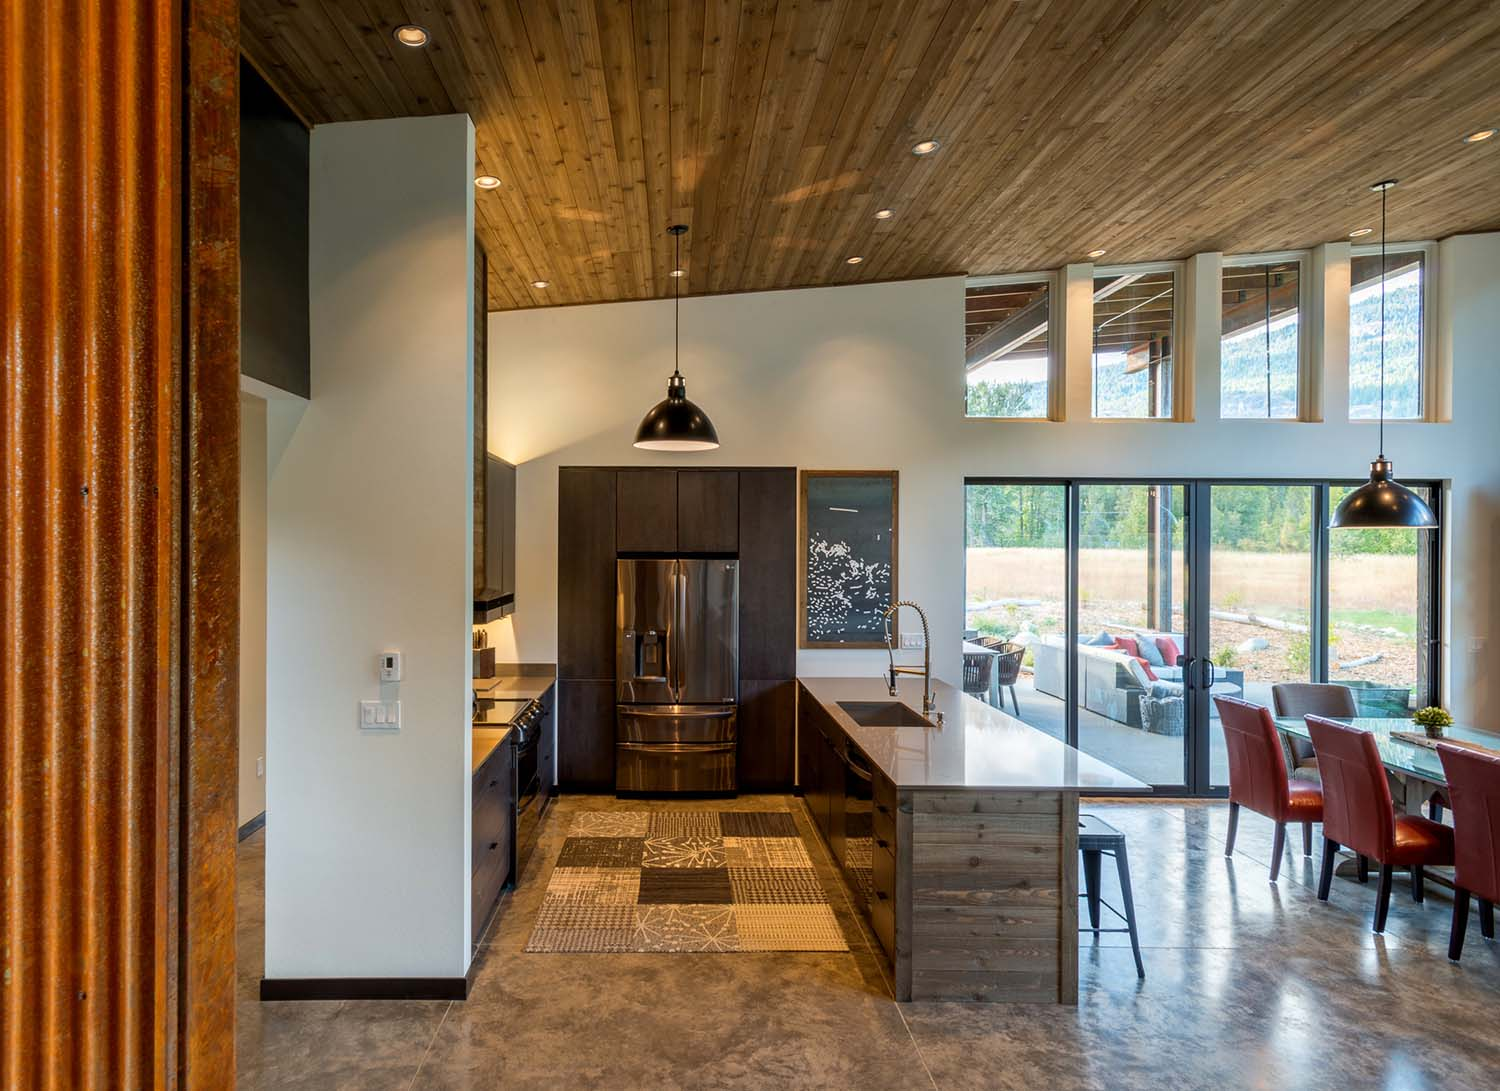 WEB13+-+Mazama+House+-+Designs+Northwest+Architects+-+Swift+Studio+-+2048px.jpg